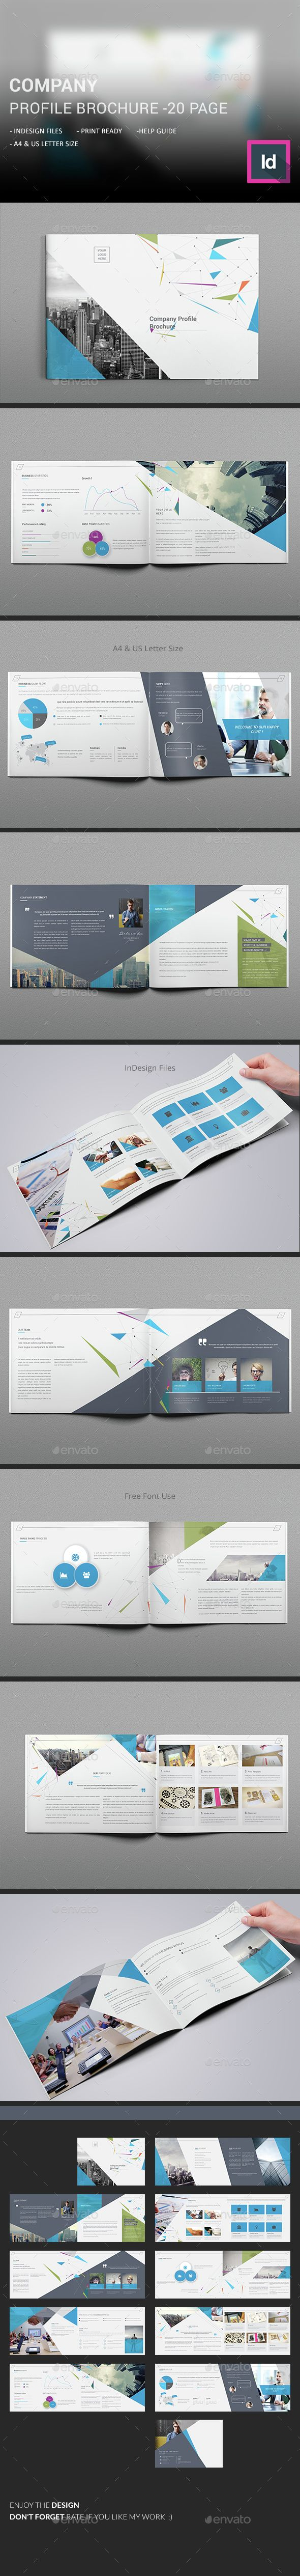 Company Profile Brochure Template InDesign INDD. Download here: http://graphicriver.net/item/company-profile-brochure/14907774?ref=ksioks